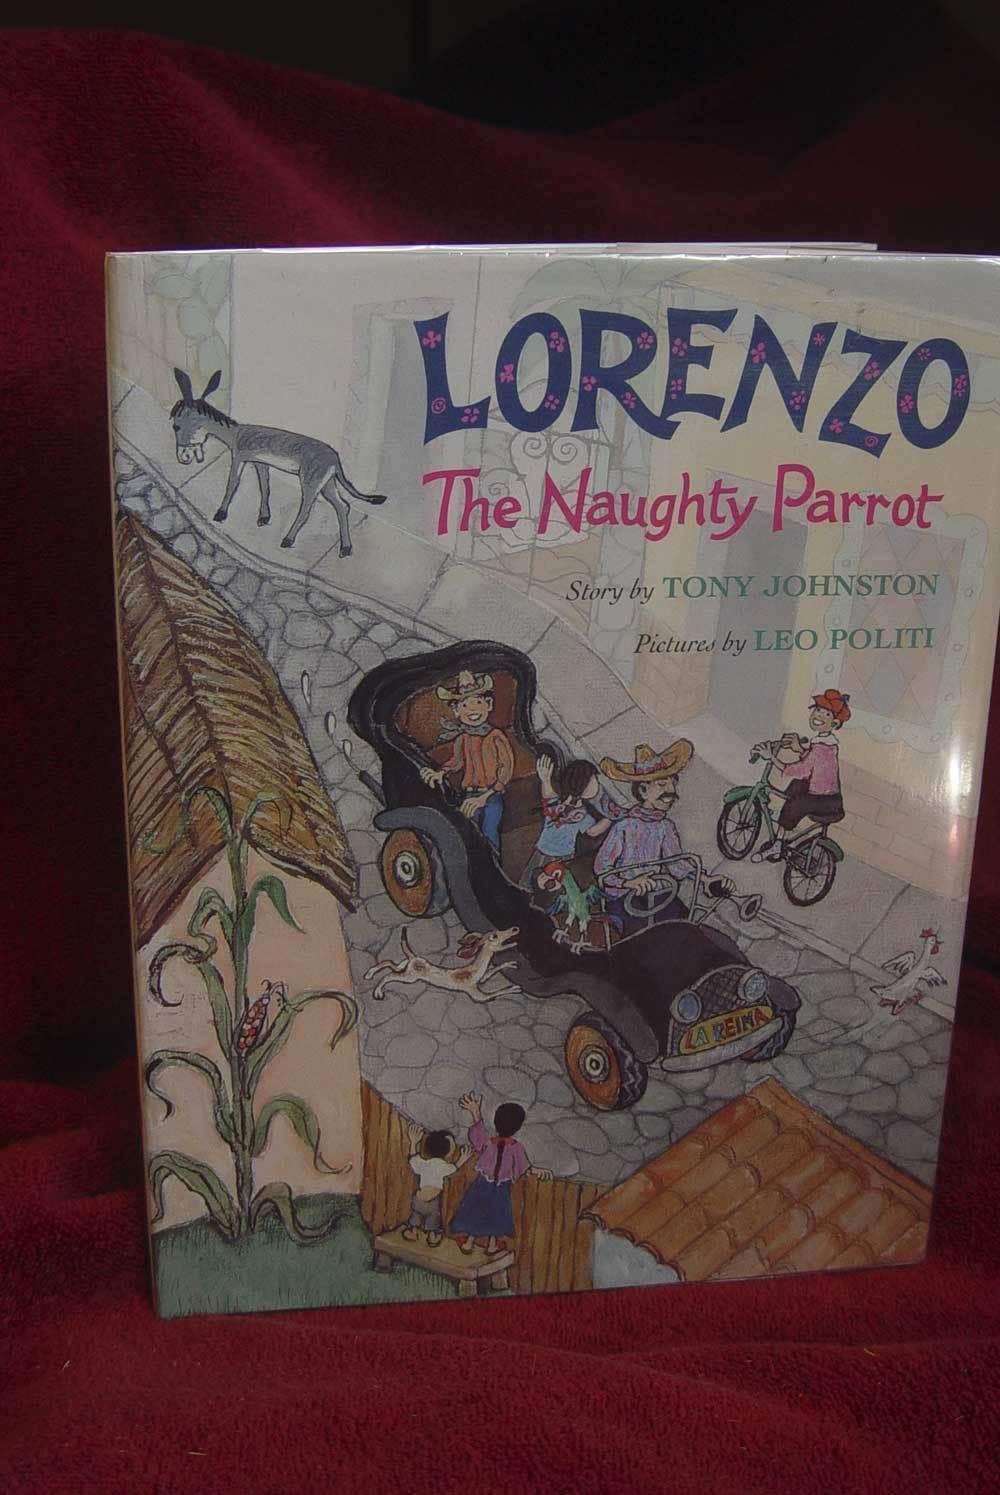 LORENZO THE NAUGHTY PARROT by Tony Johnston ILLUSTRATED by LEO POLITI FULL PAGE